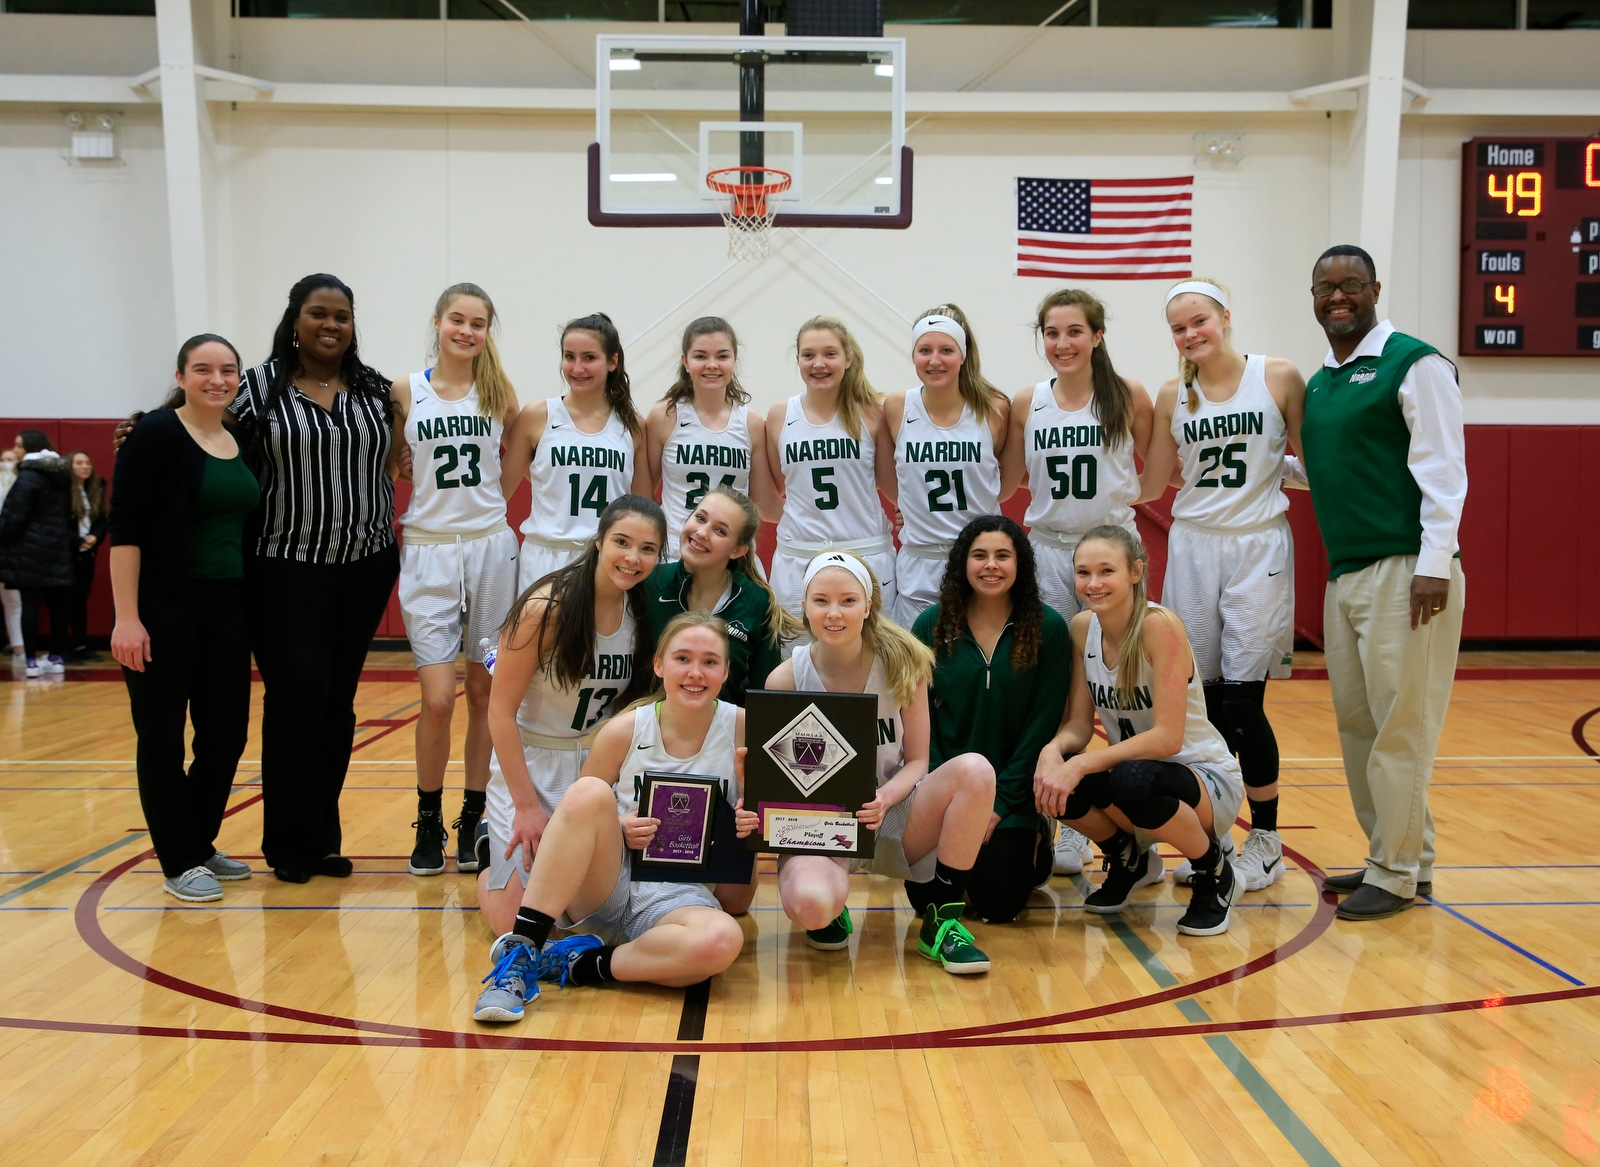 Nardin celebrates its victory over Park for the Monsignor Martin Division B championship at Sacred Heart high school on Friday, March 2, 2018.